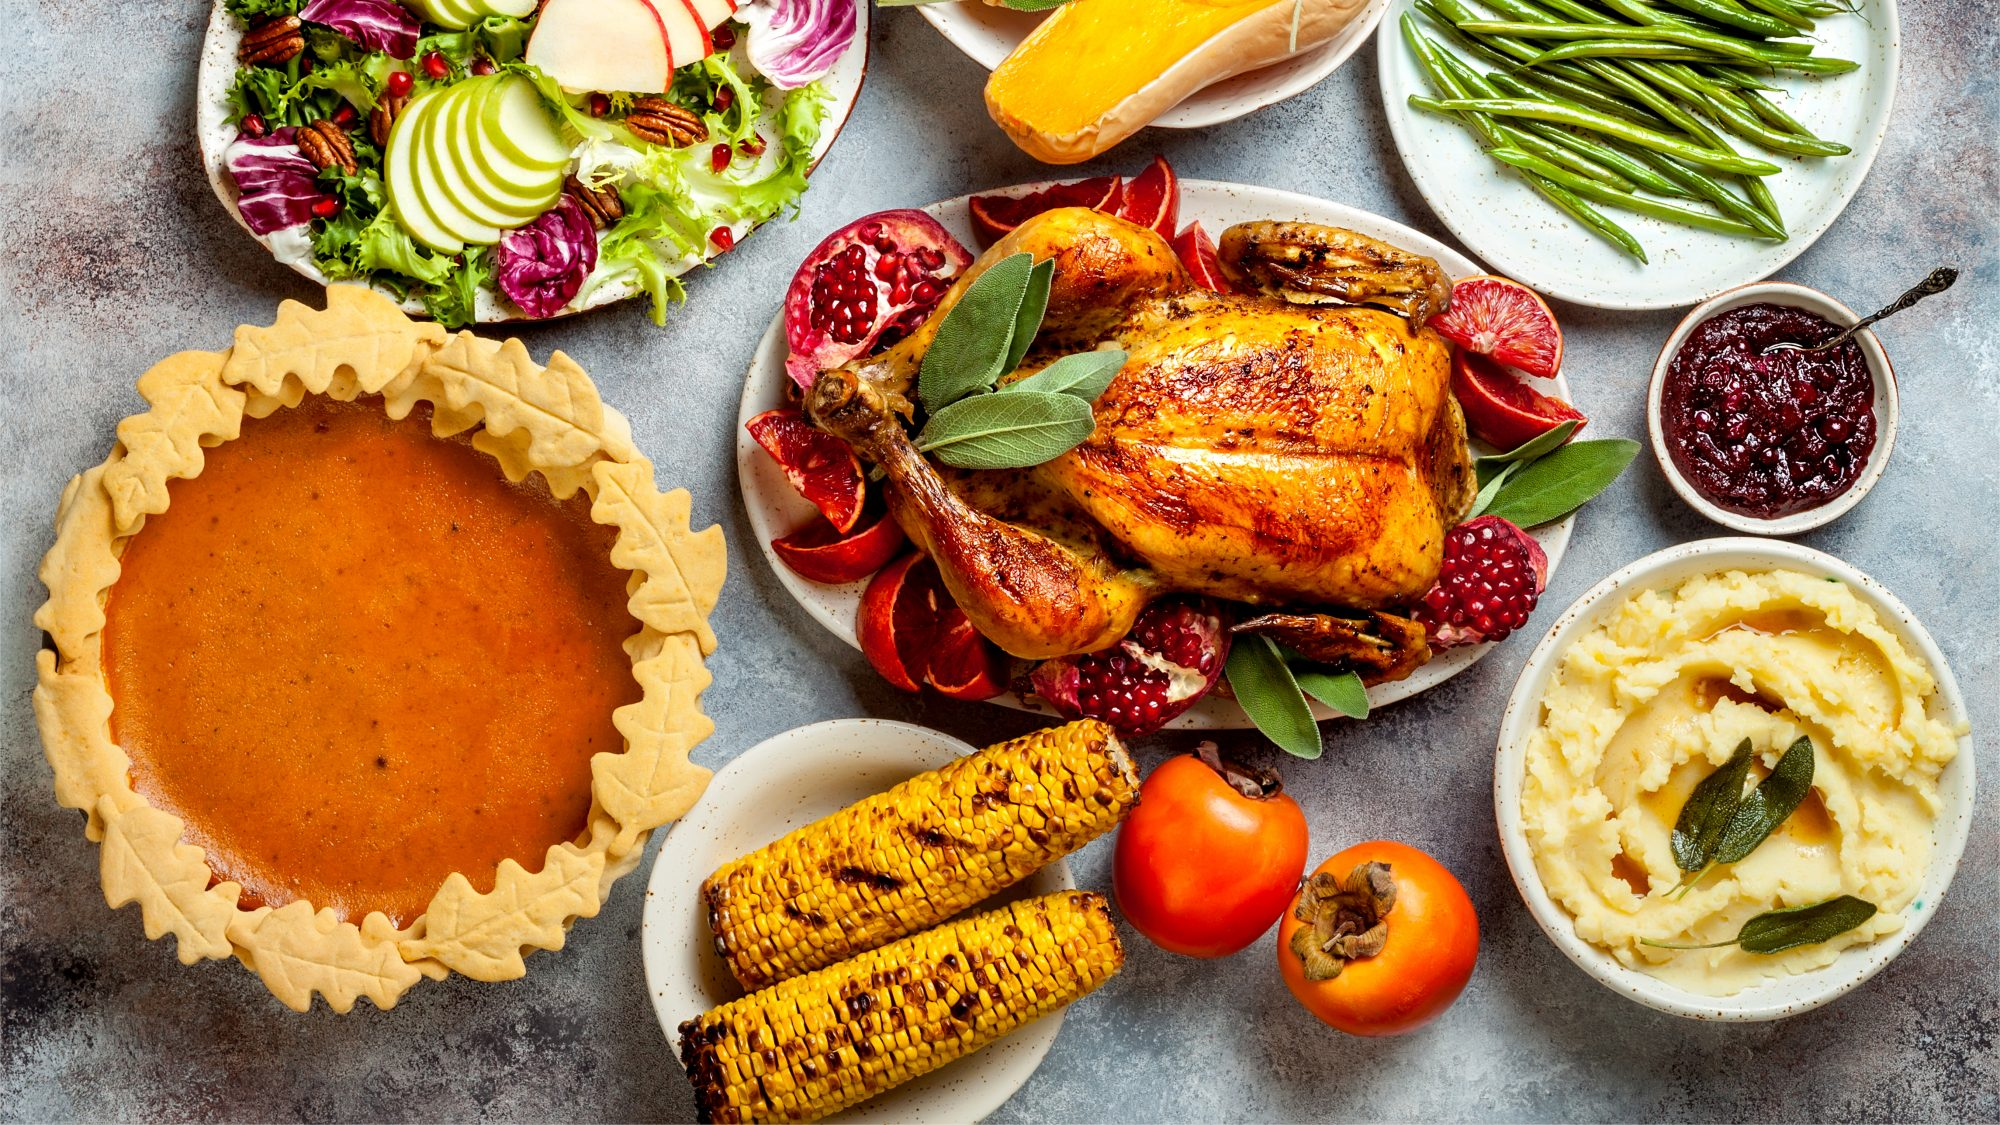 Where-to-order-thanksgiving-food: Thanksgiving feast